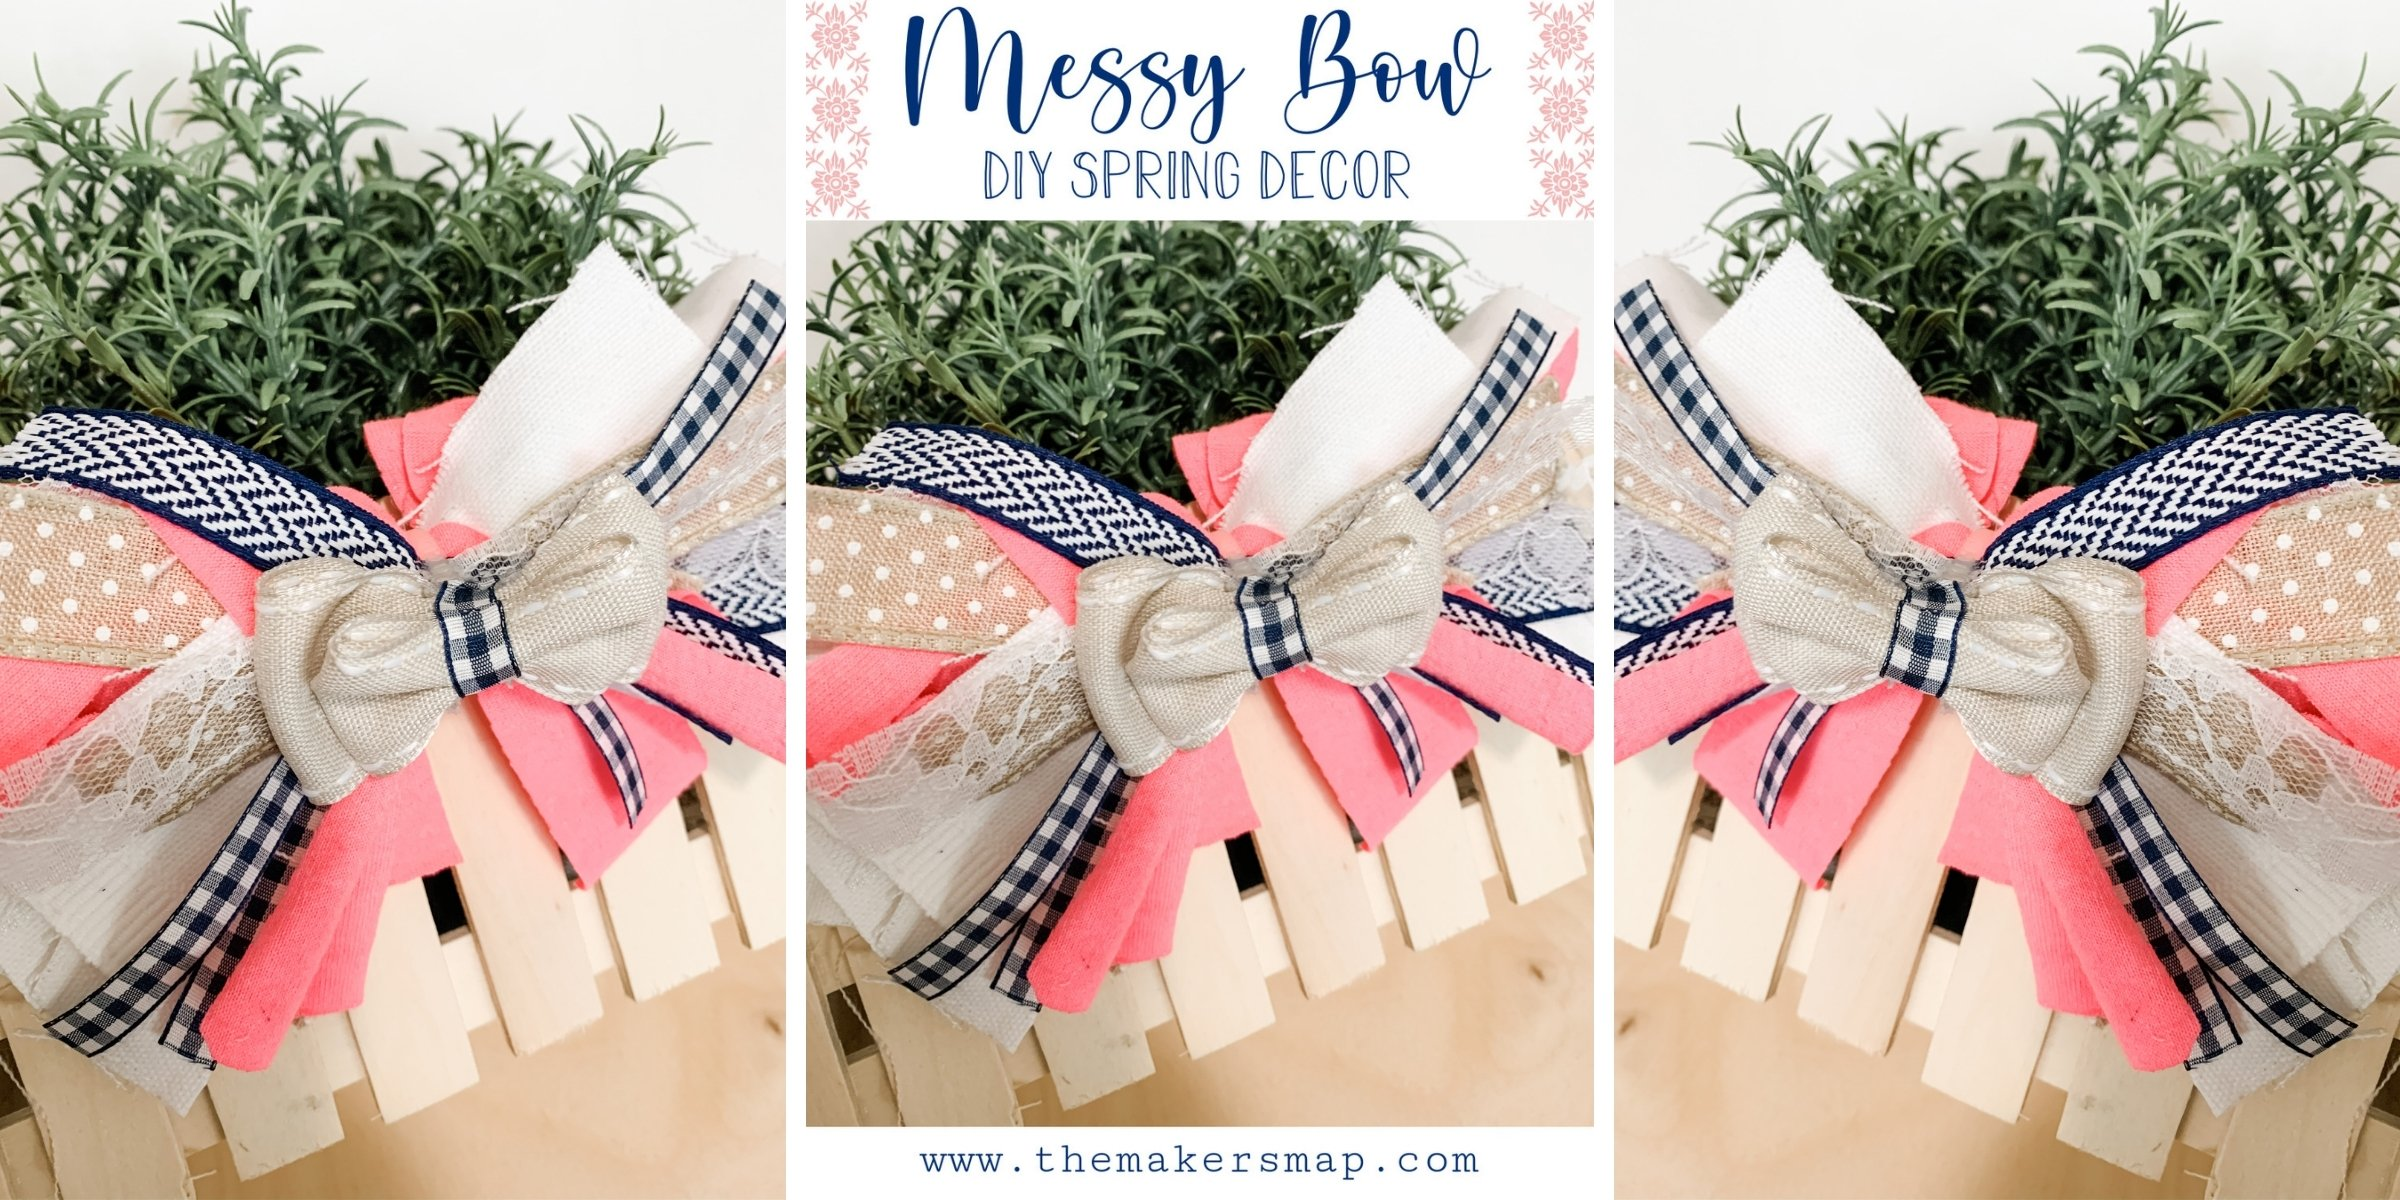 Easy DIY Layered Messy Bow